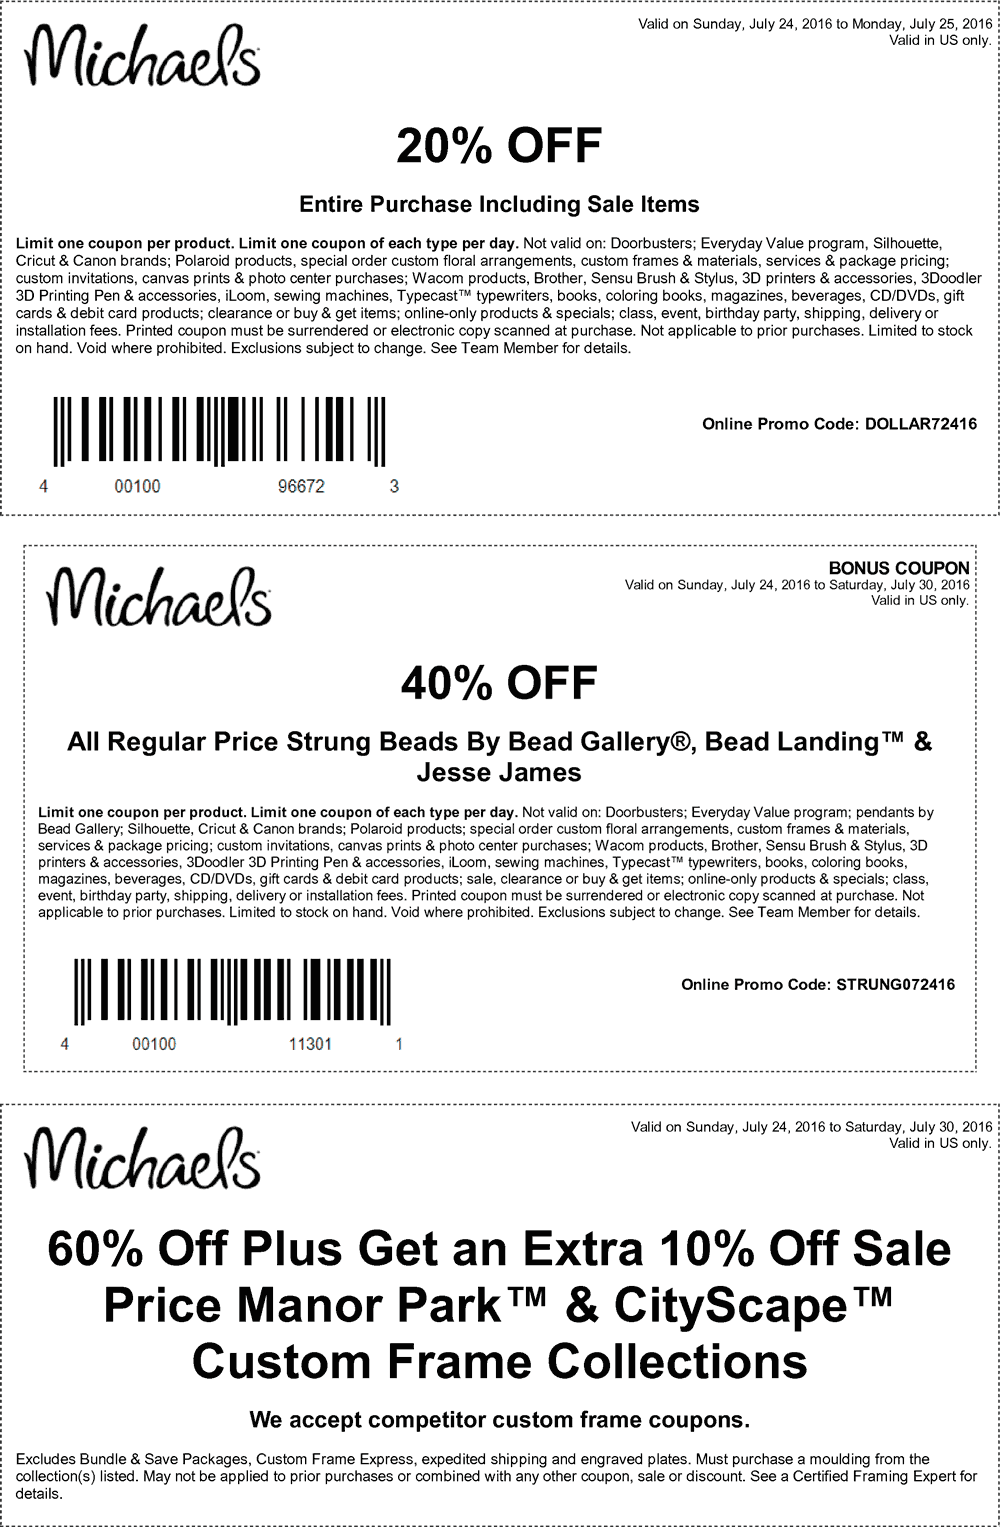 Michaels Coupon April 2017 20% off everything at Michaels, or online via promo code DOLLAR72416